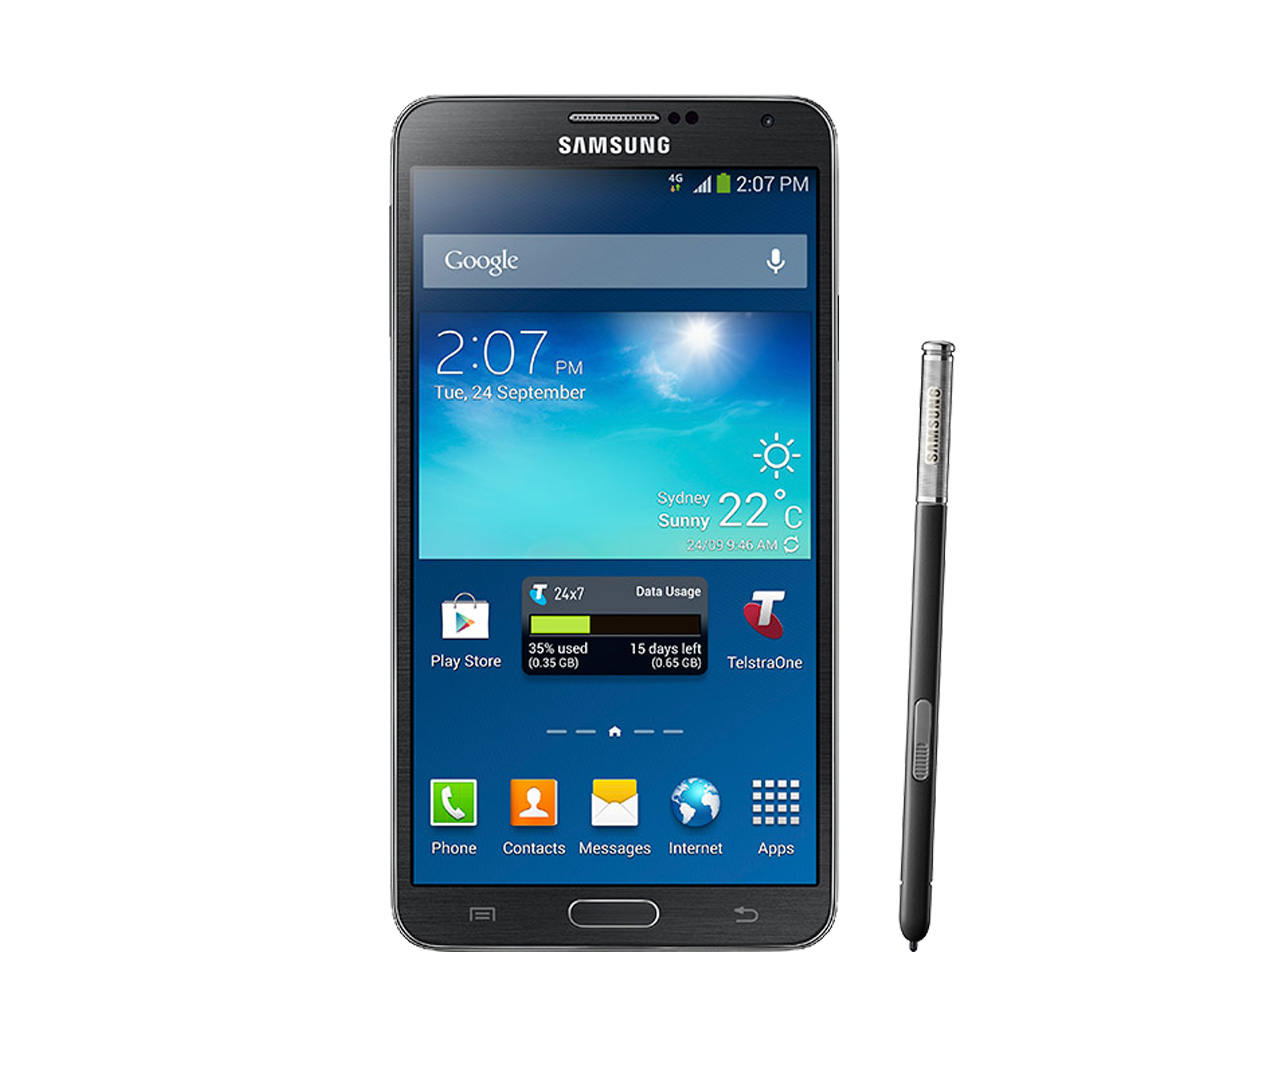 Galaxy Note 3 Power Button/ Lock Button Repair